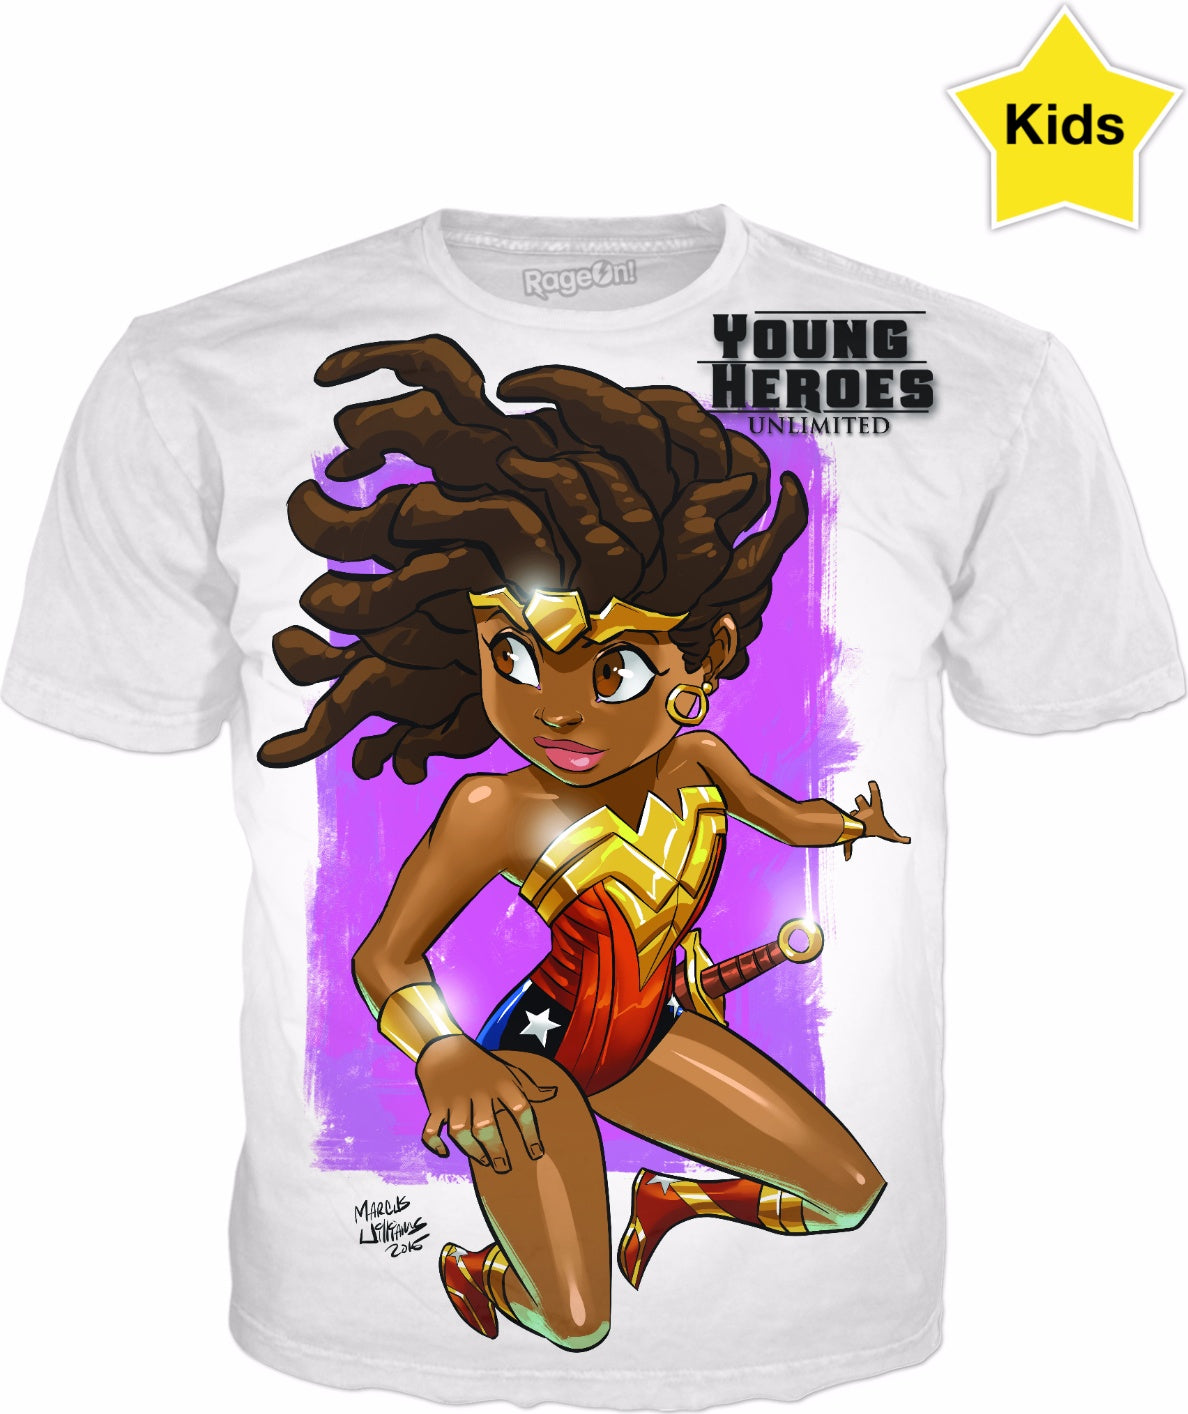 Young Heroes: Unlimited (Limited Edition Kids Shirts)- Nubia